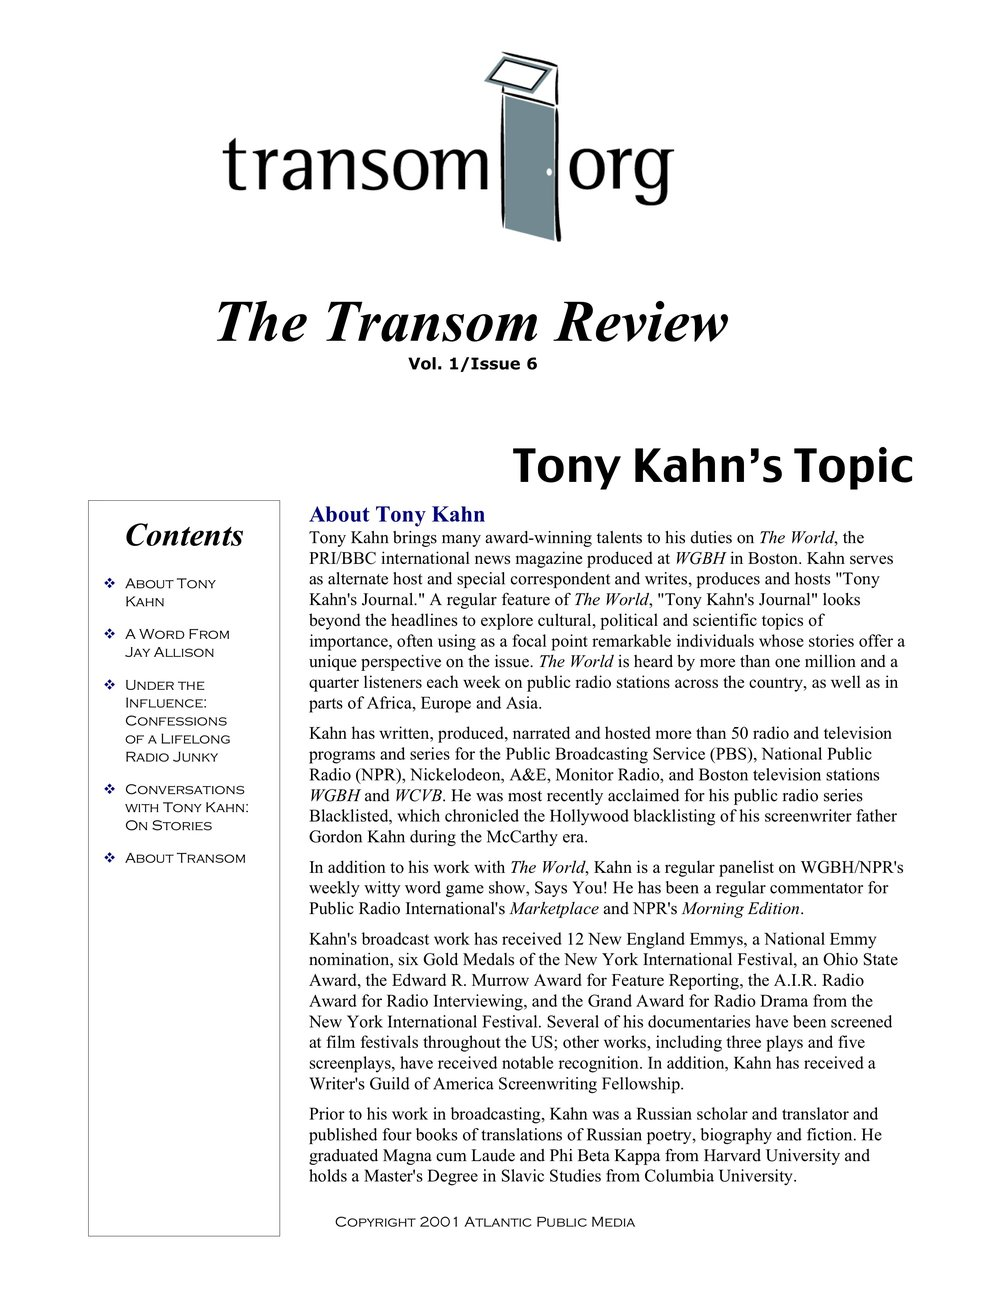 Transom .review.tkahn.jpg